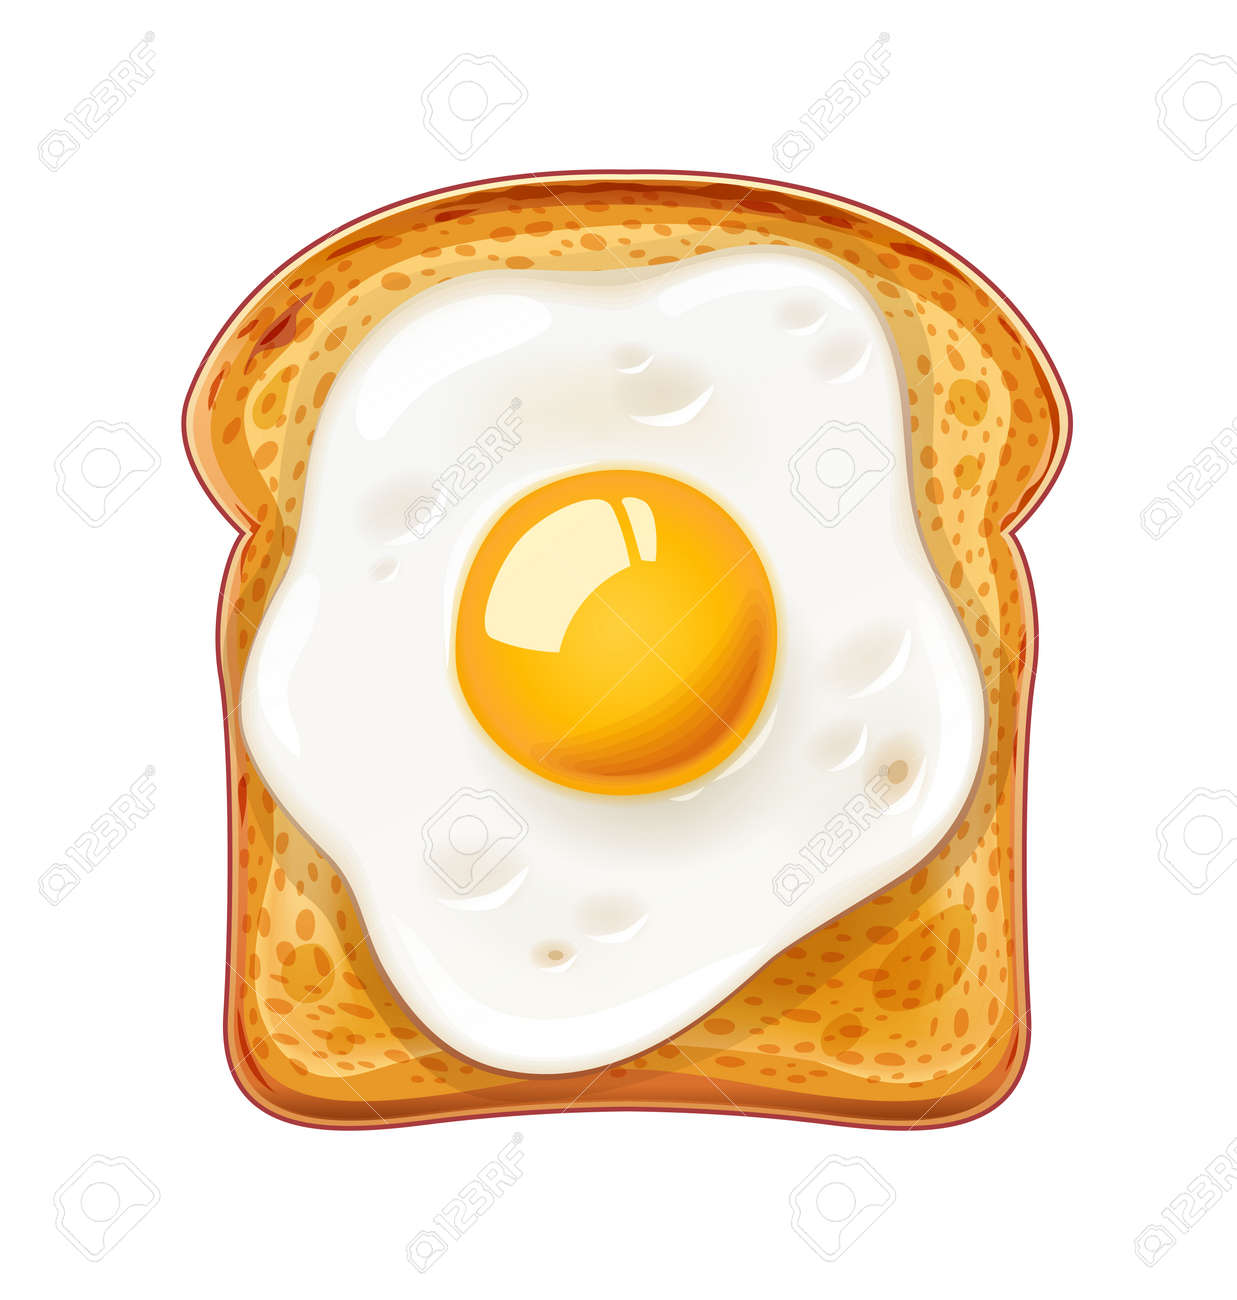 Sandwich with Fried egg. Fast food. Cooking lunch, dinner, breakfast. Natural product. Cooked omelet. Scrambled eggs. Isolated white background. EPS10 vector illustration. - 100567380